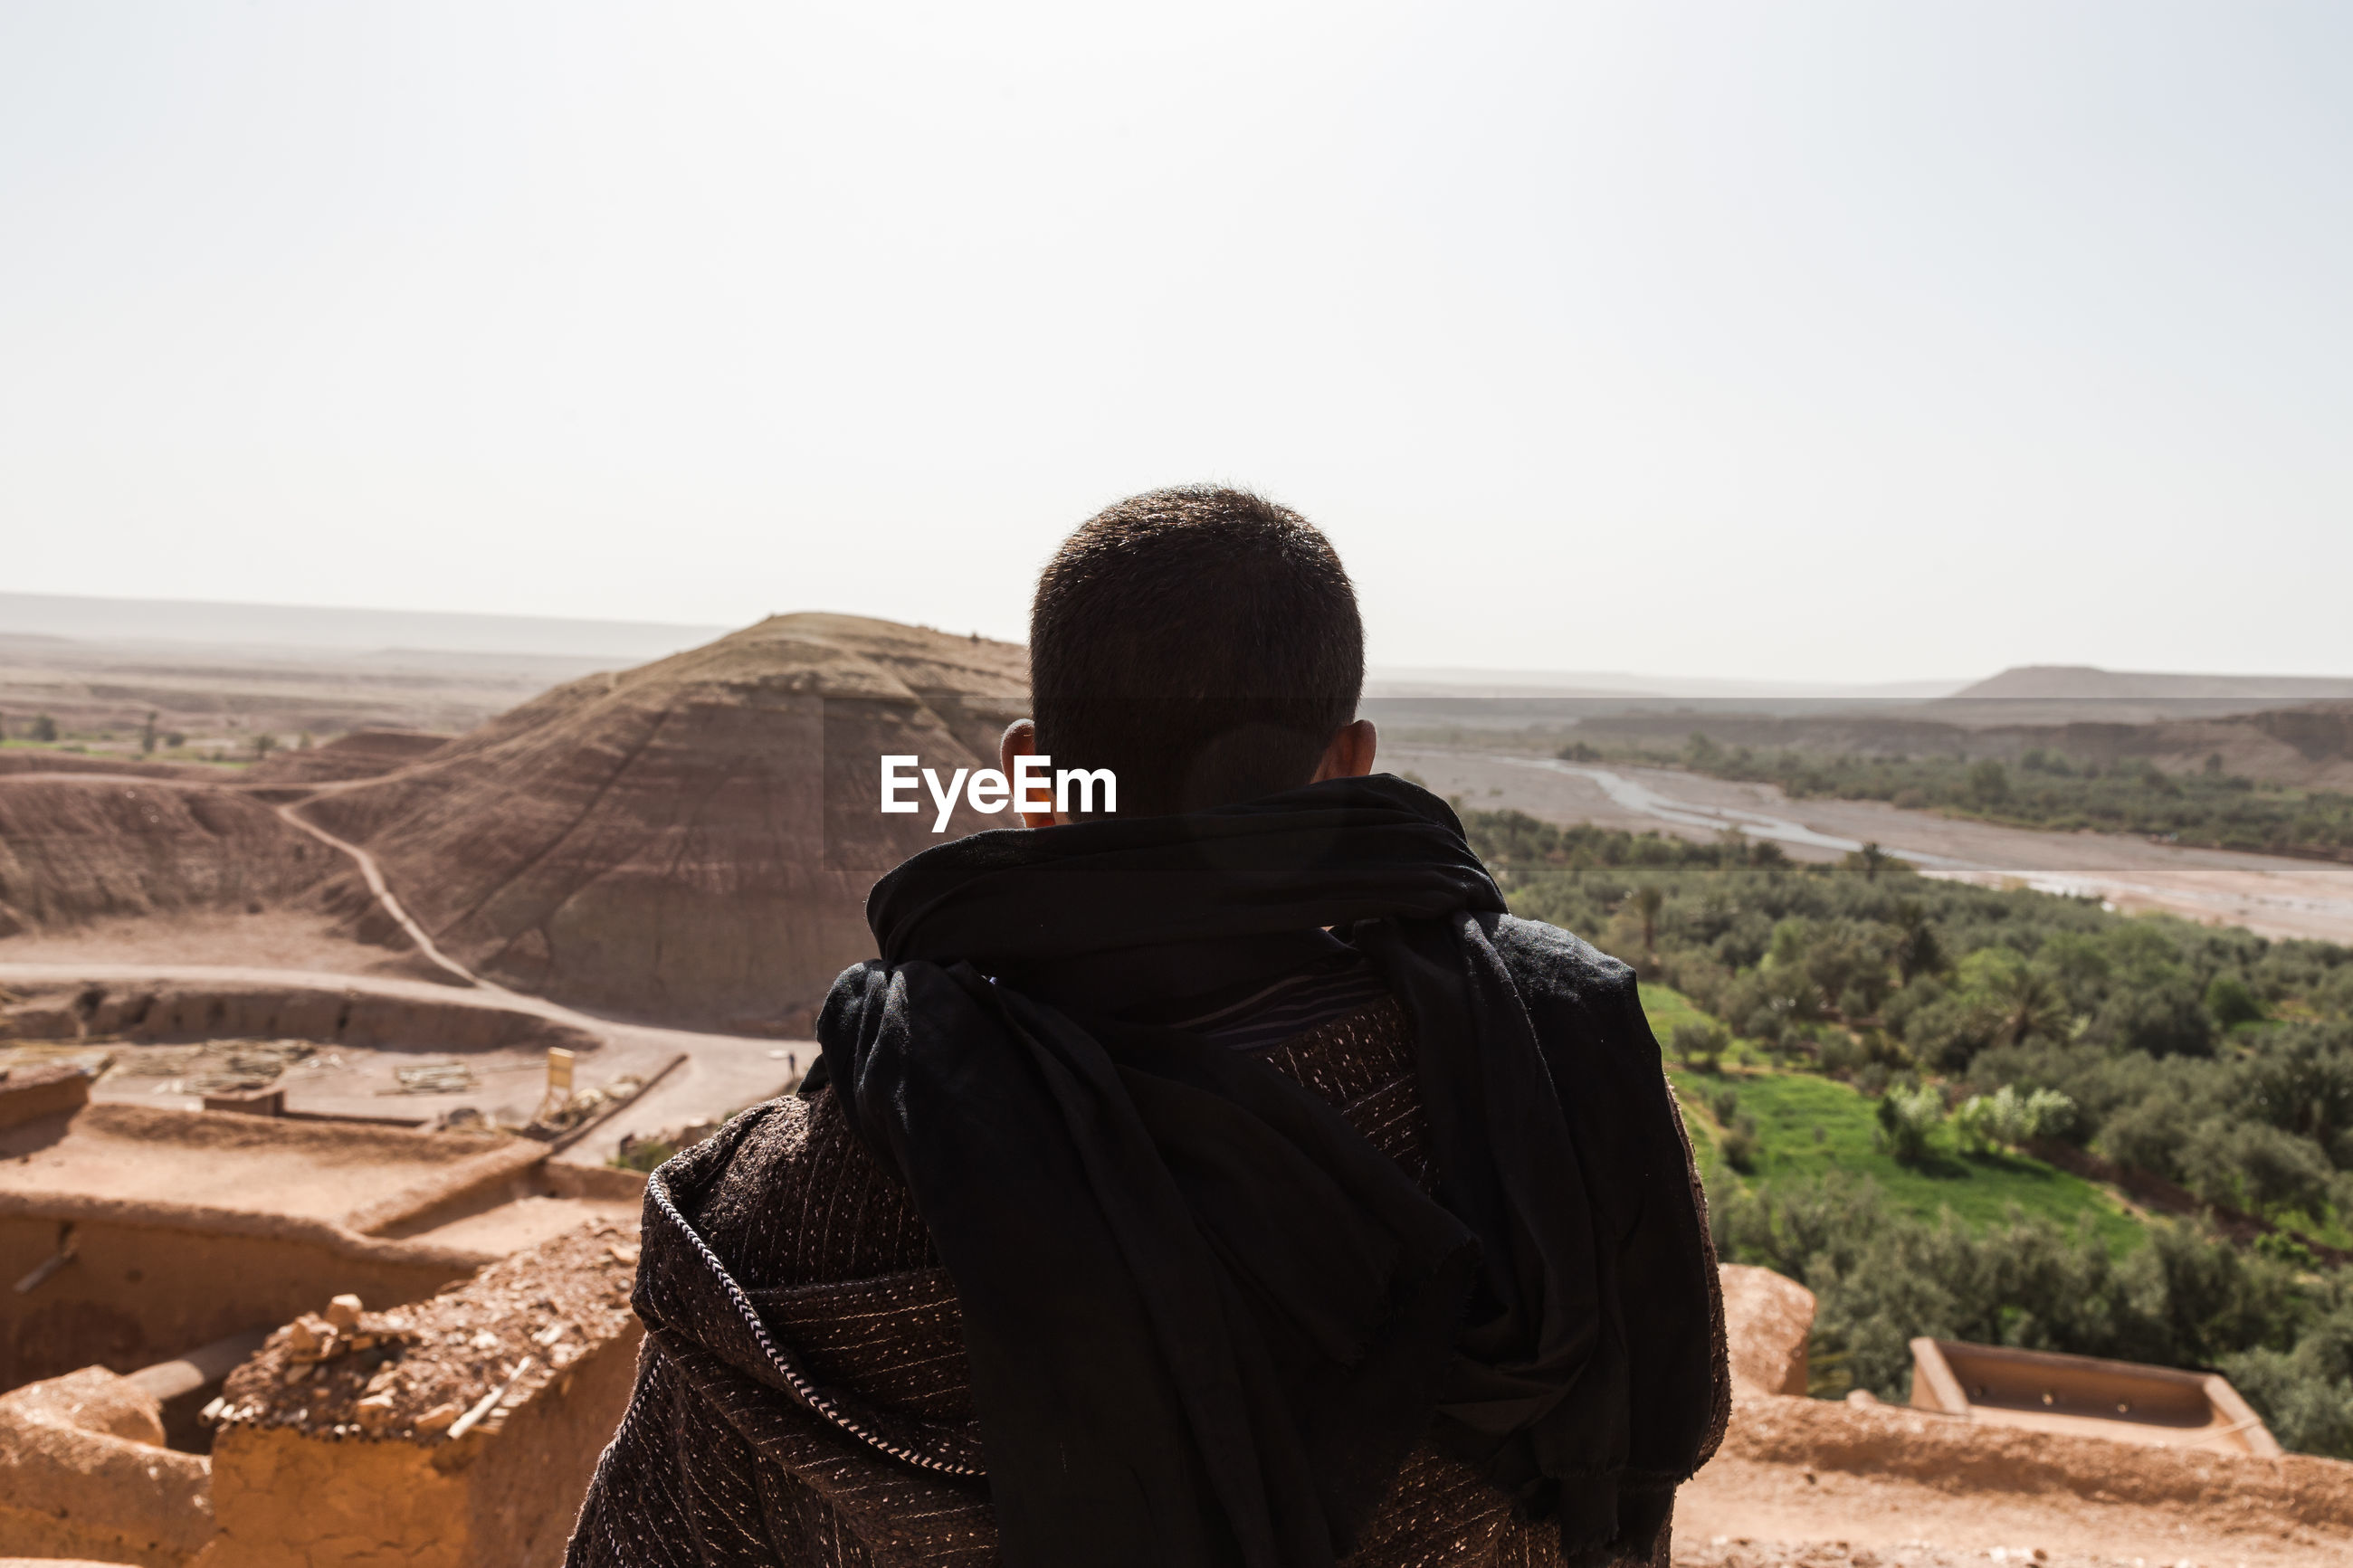 Rear view of man looking at landscape against clear sky